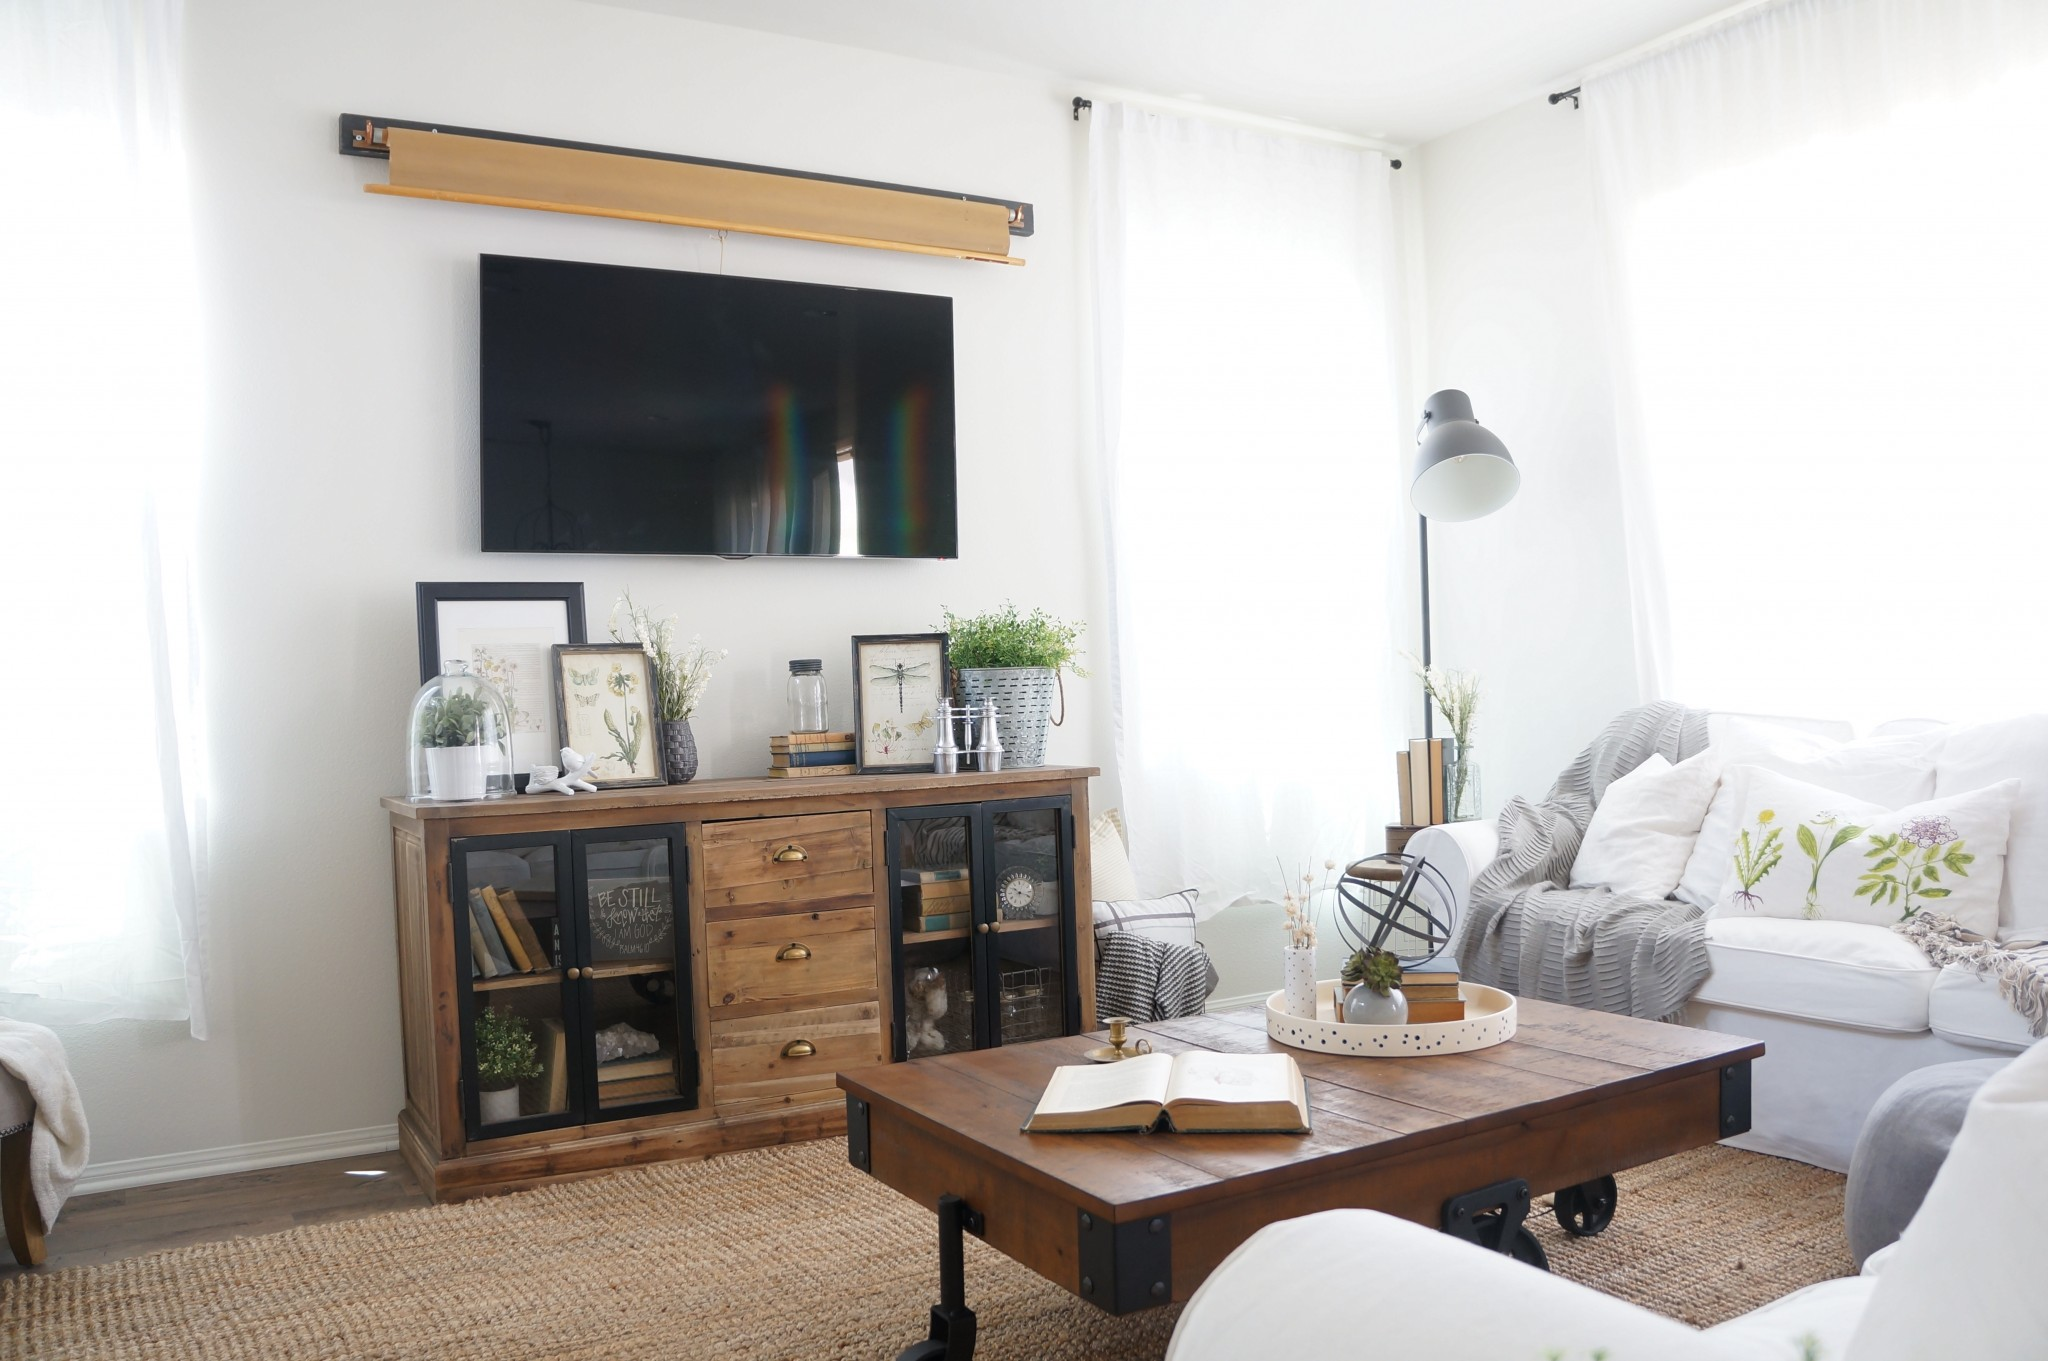 hiding tv in living room furniture layout rules solutionhome love stories i started searching everywhere on the internet to find an easy stylish solution for our giant black box finally came across one photo of a map and